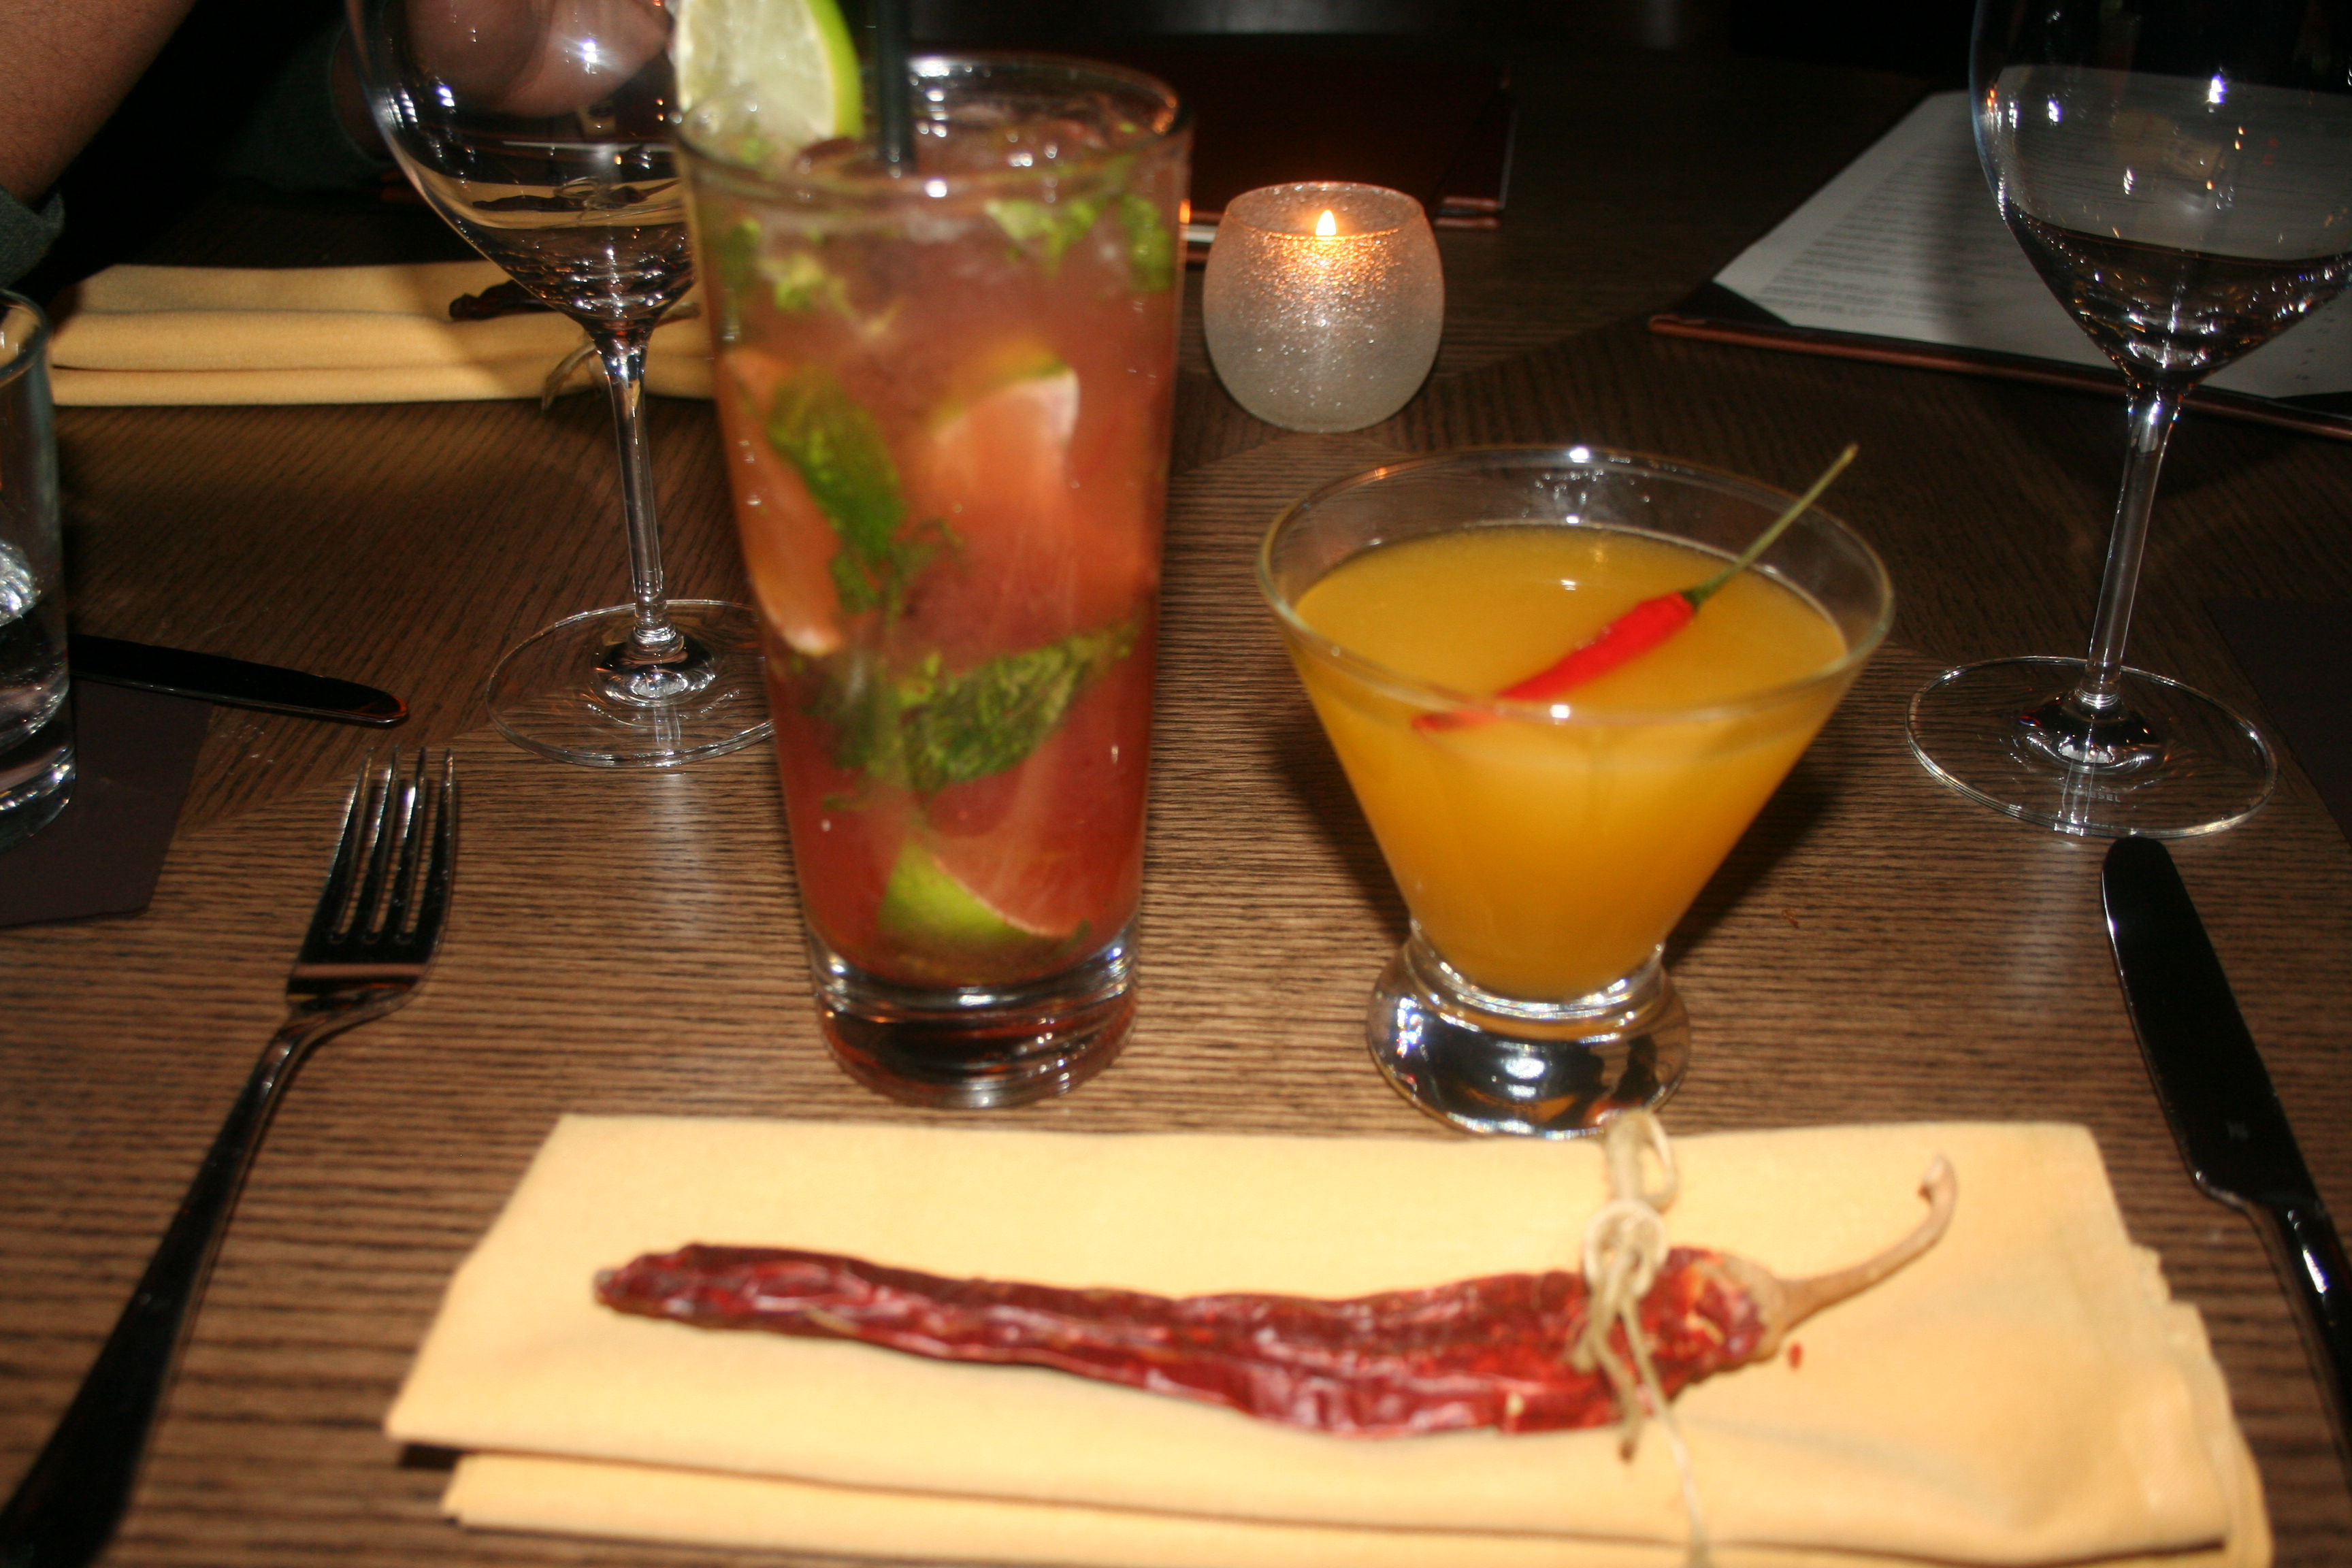 The strawberry basil caipirinha (left) is fruity while the Spicy Siam is sweet and spicy. (Photo: Mark Heckathorn/DC on Heels)